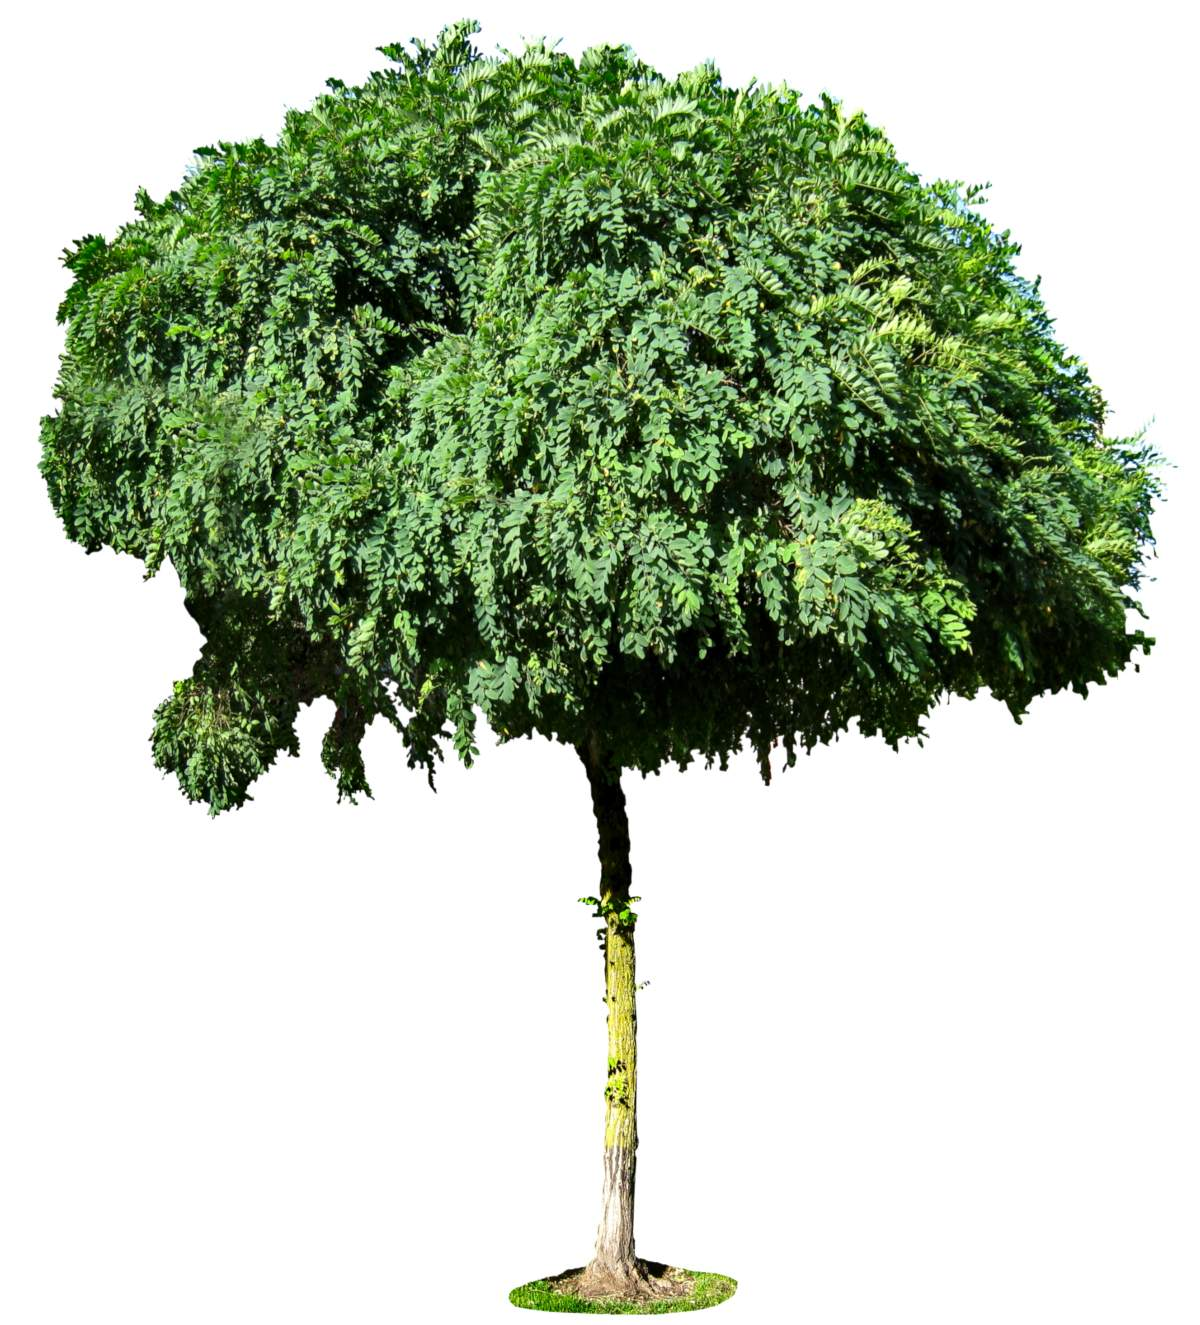 Delineated mophead acacia tree